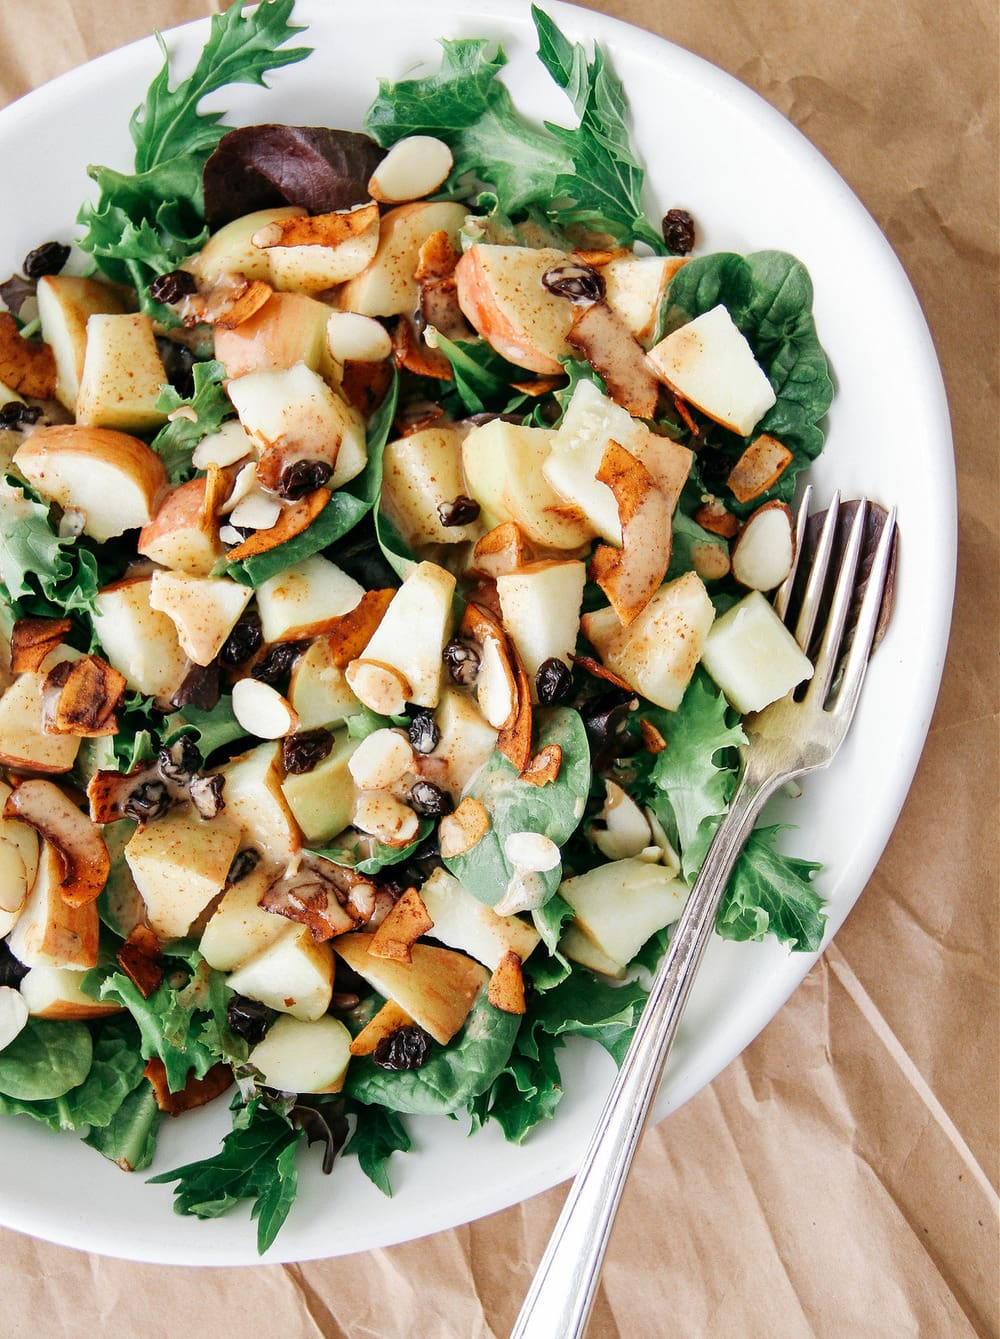 APPLE & COCONUT BACON SALAD